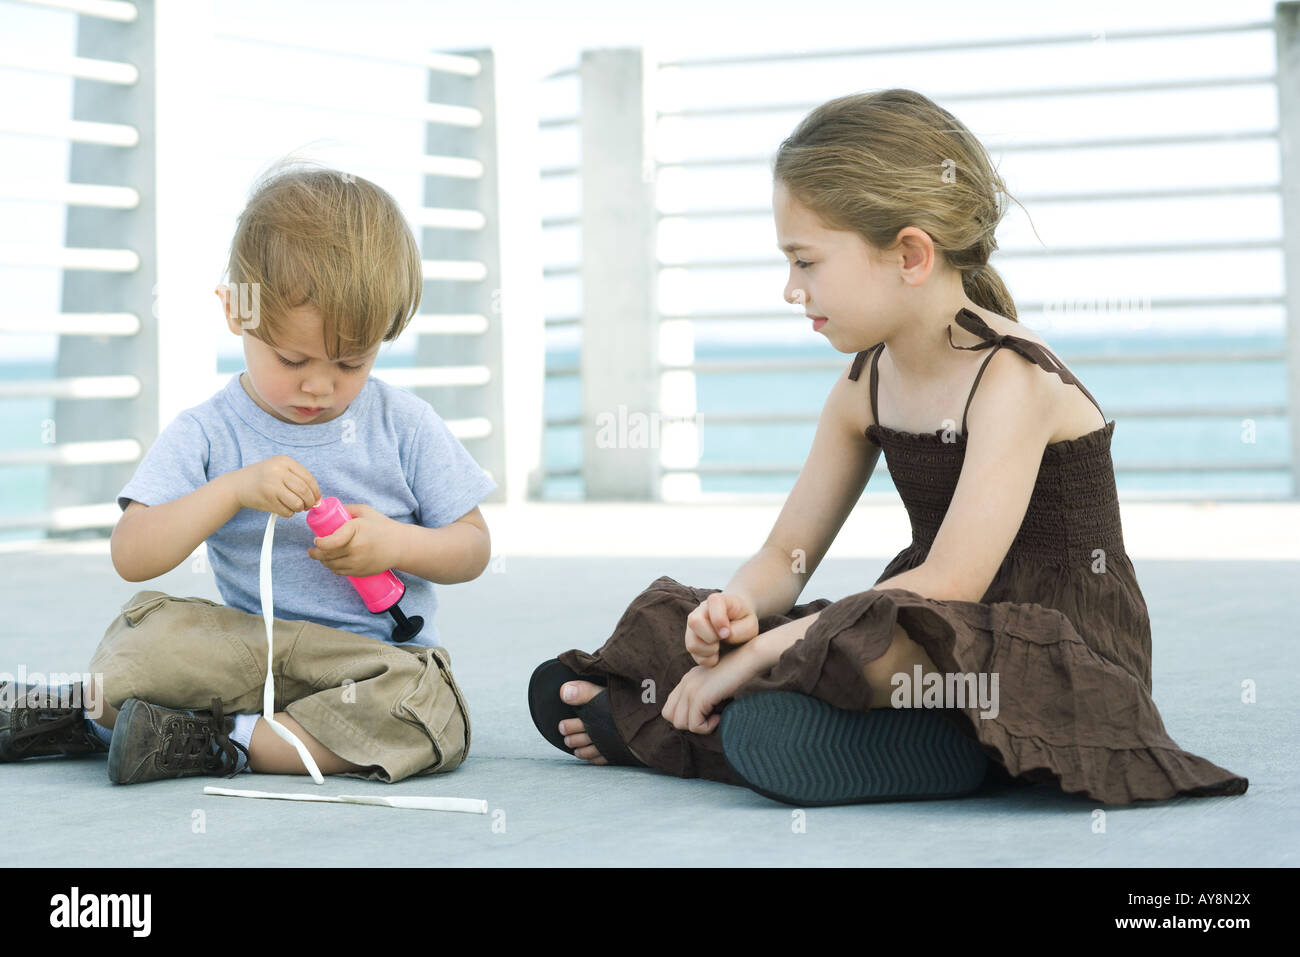 Little boy sitting on the ground inflating balloon with air pump, older sister watching Stock Photo